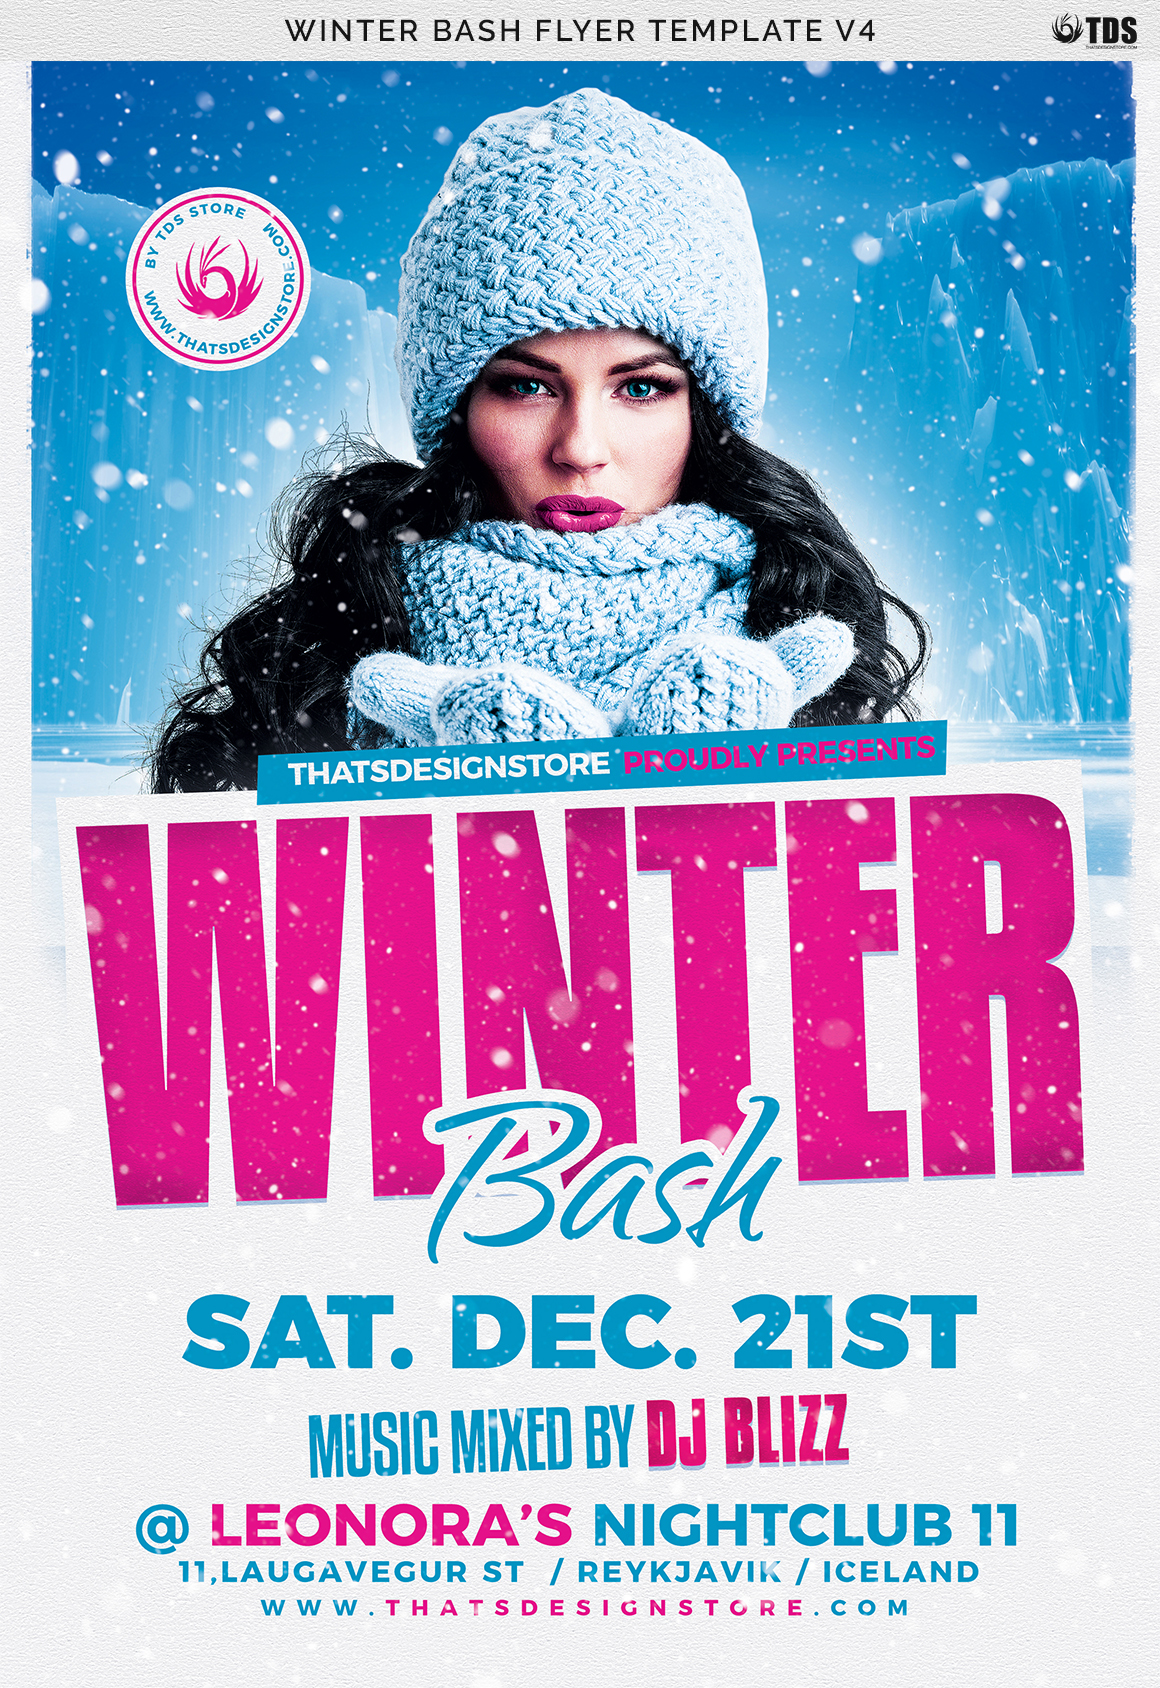 Winter Bash Flyer Template V4 example image 7